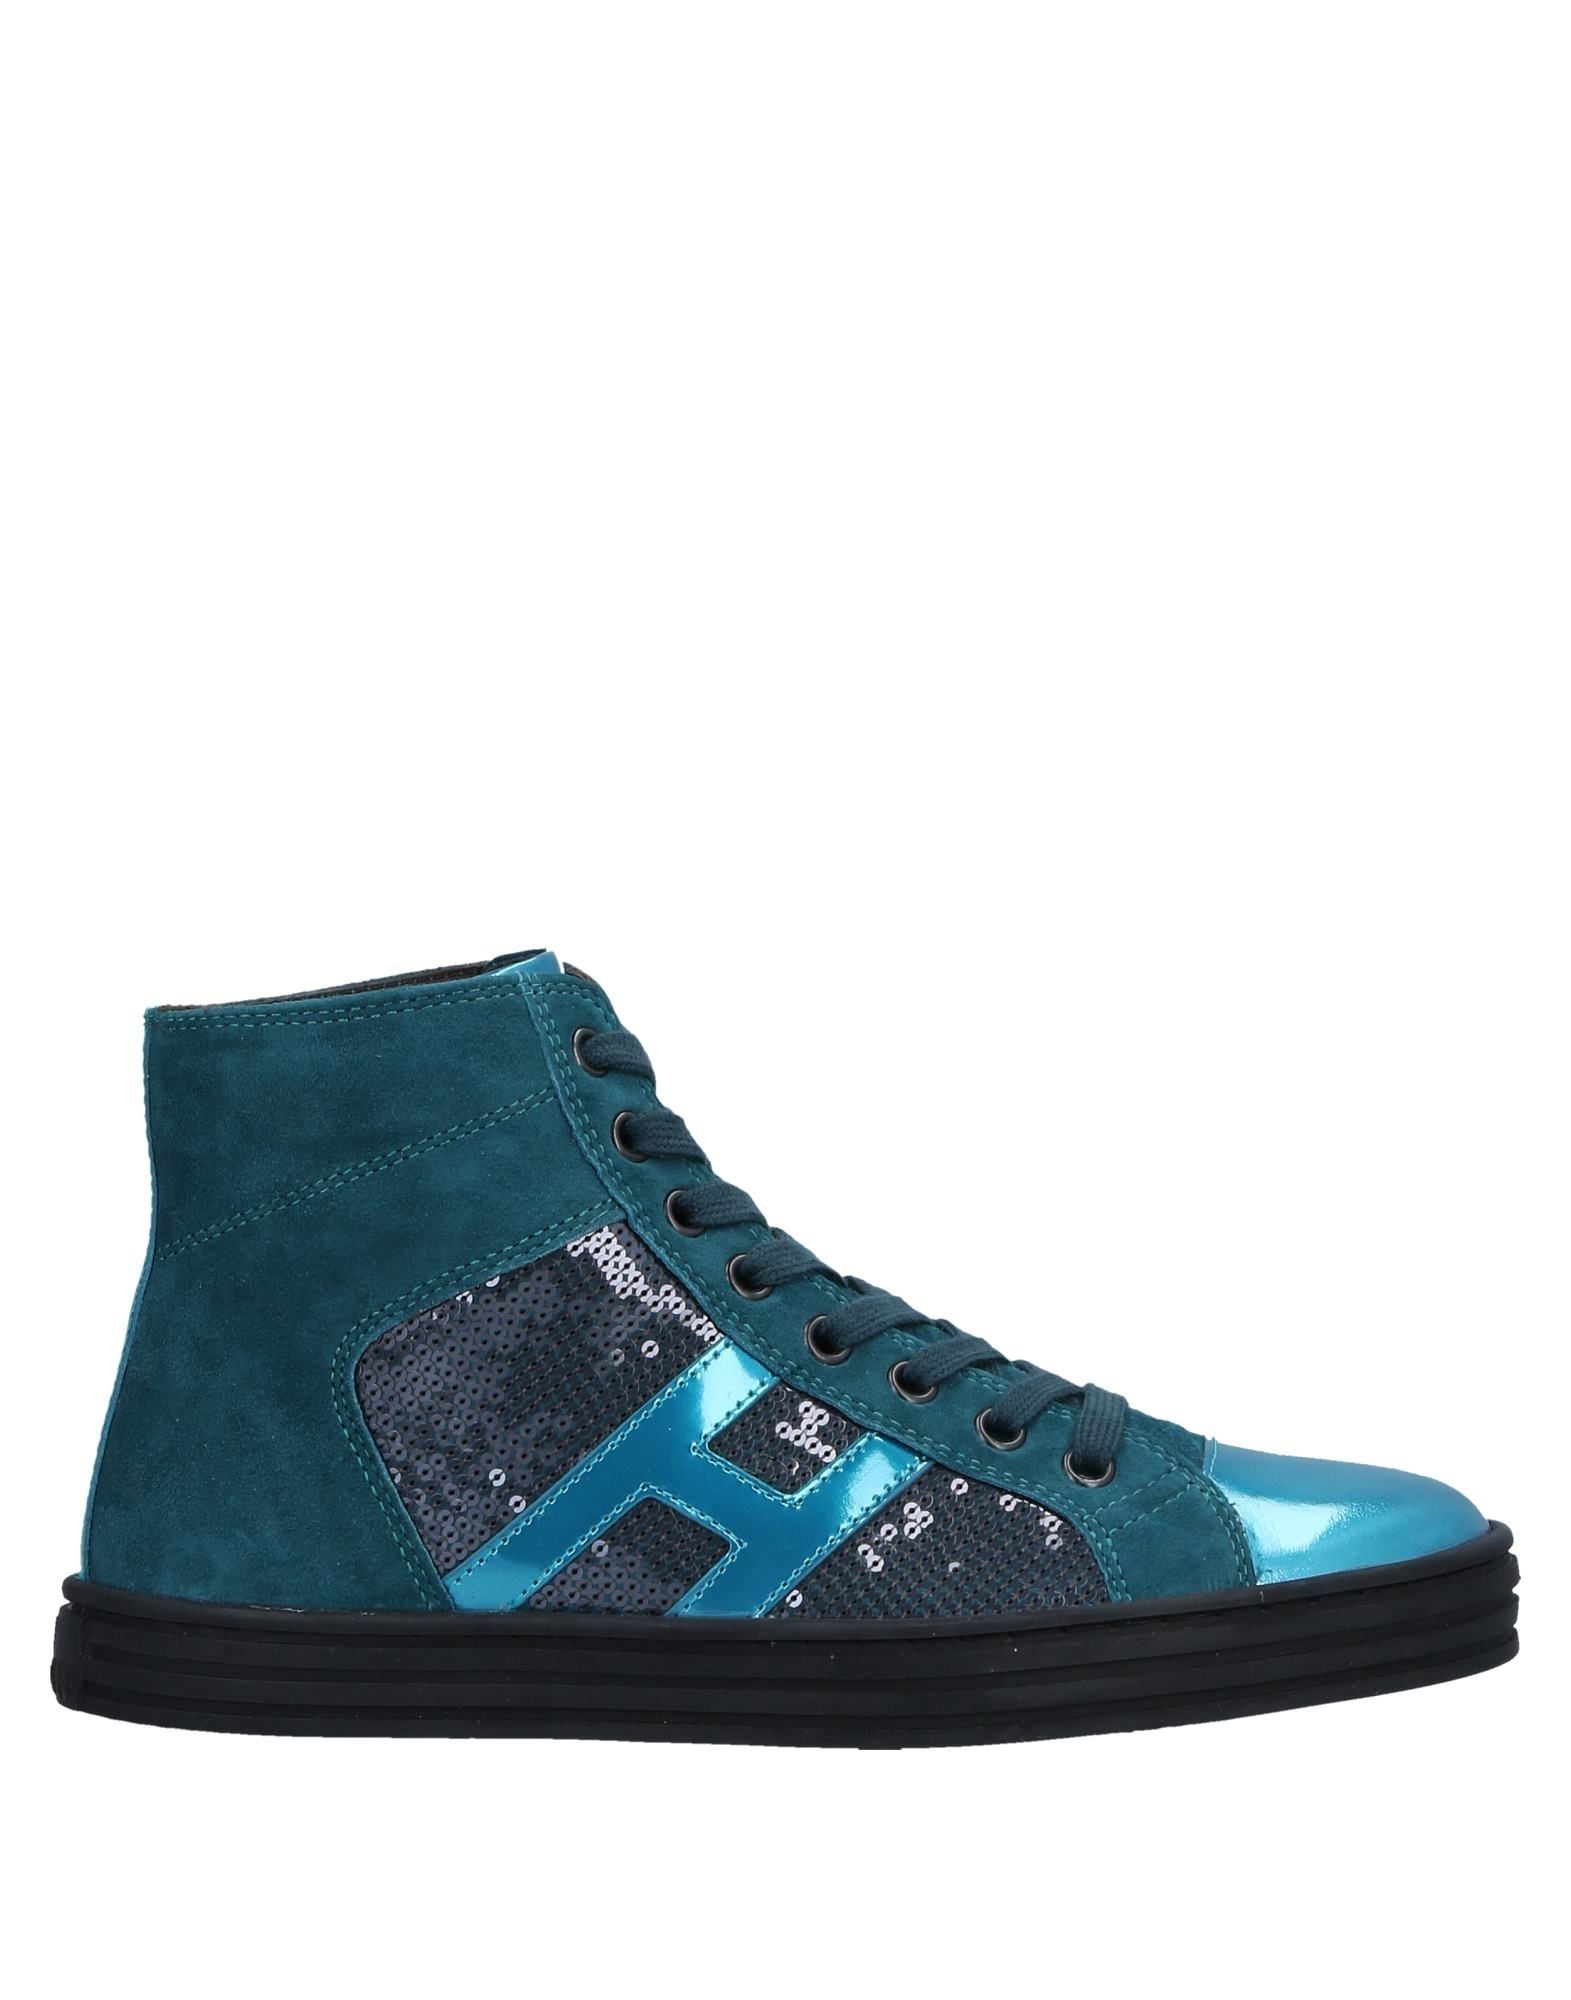 Turnscarpe Hogan Rebel donna - 11539798GL 11539798GL  Luxusmarke